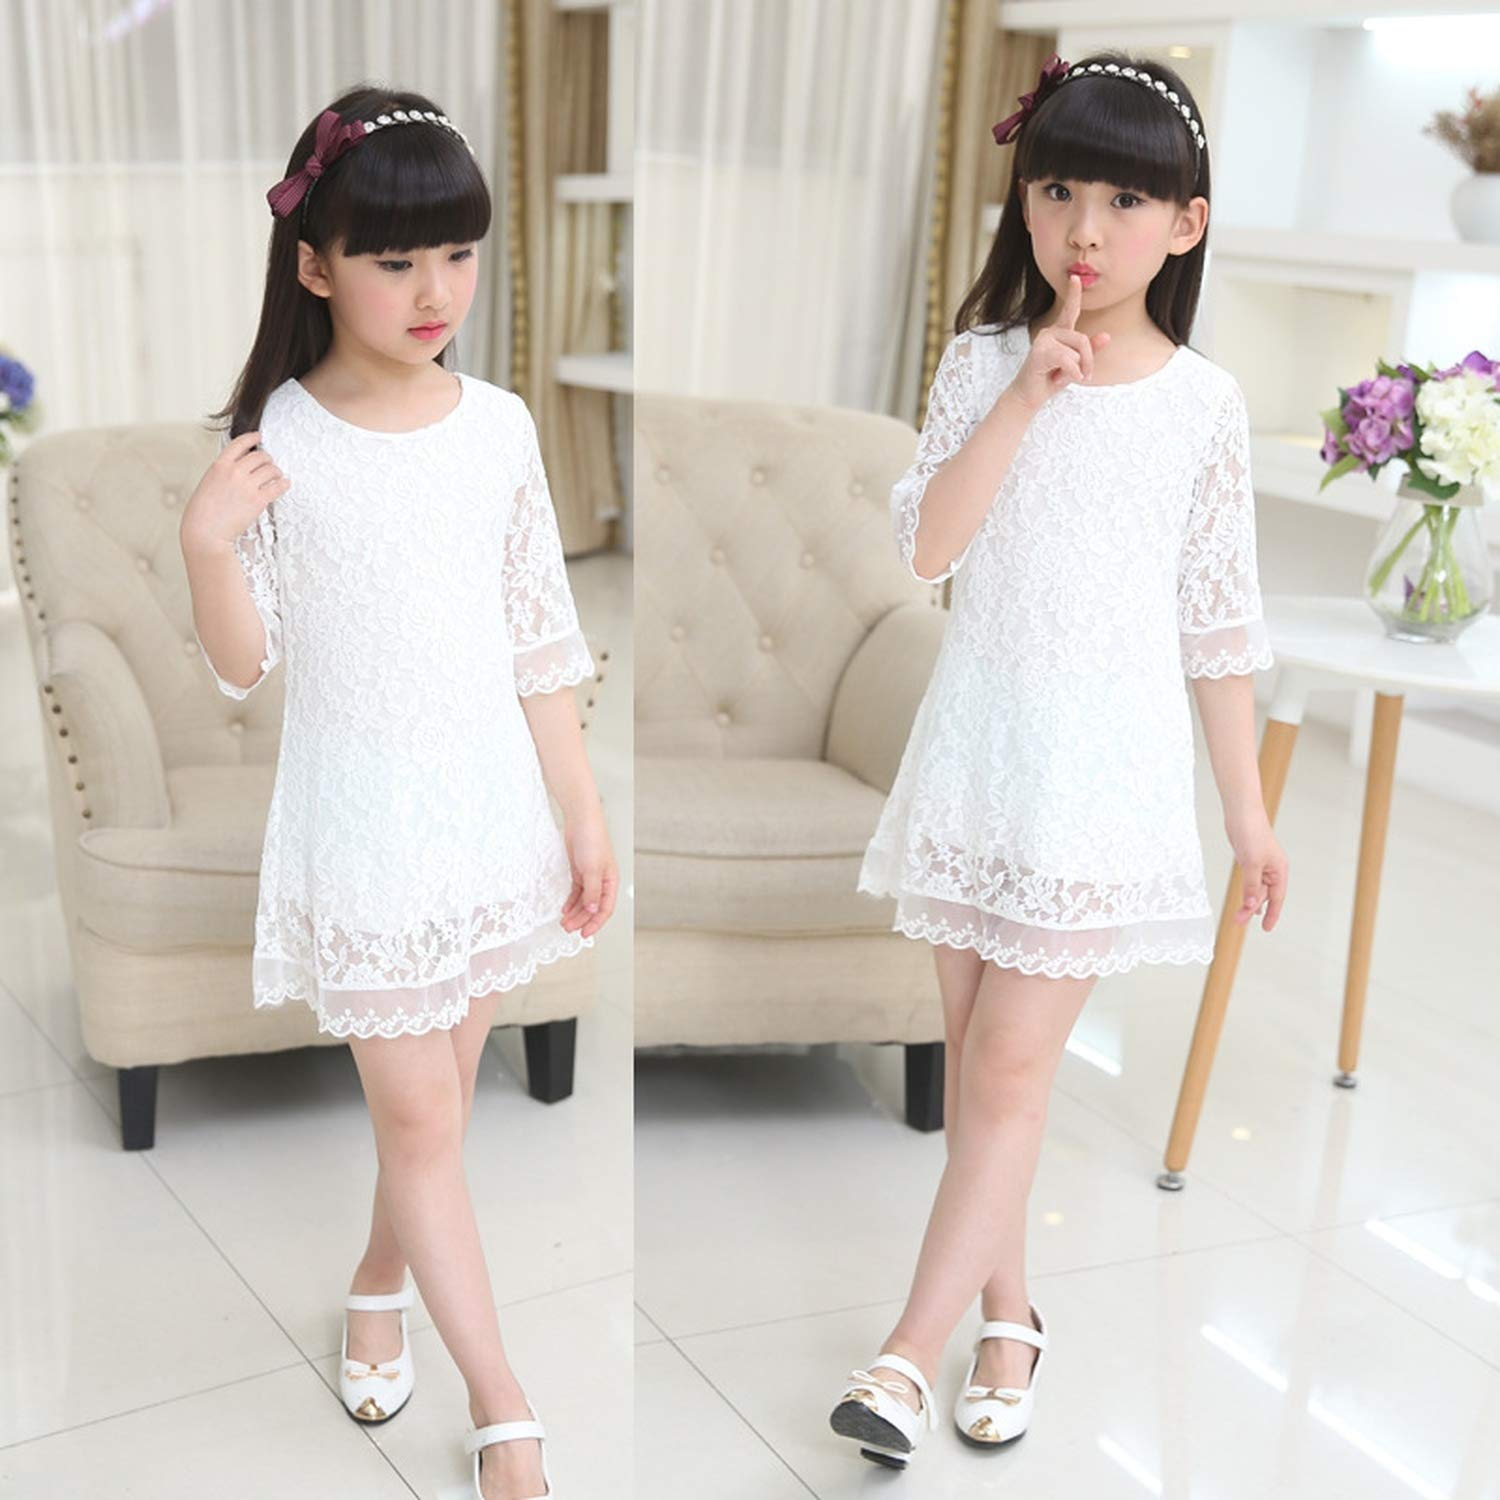 Kids 2018 Summer Autumn Lace Dress White Large Size Girls Dress Princess 3 4 6 8 10 12 14 16 18 Years Old Baby Girl,White,7 by Gooding Day (Image #5)